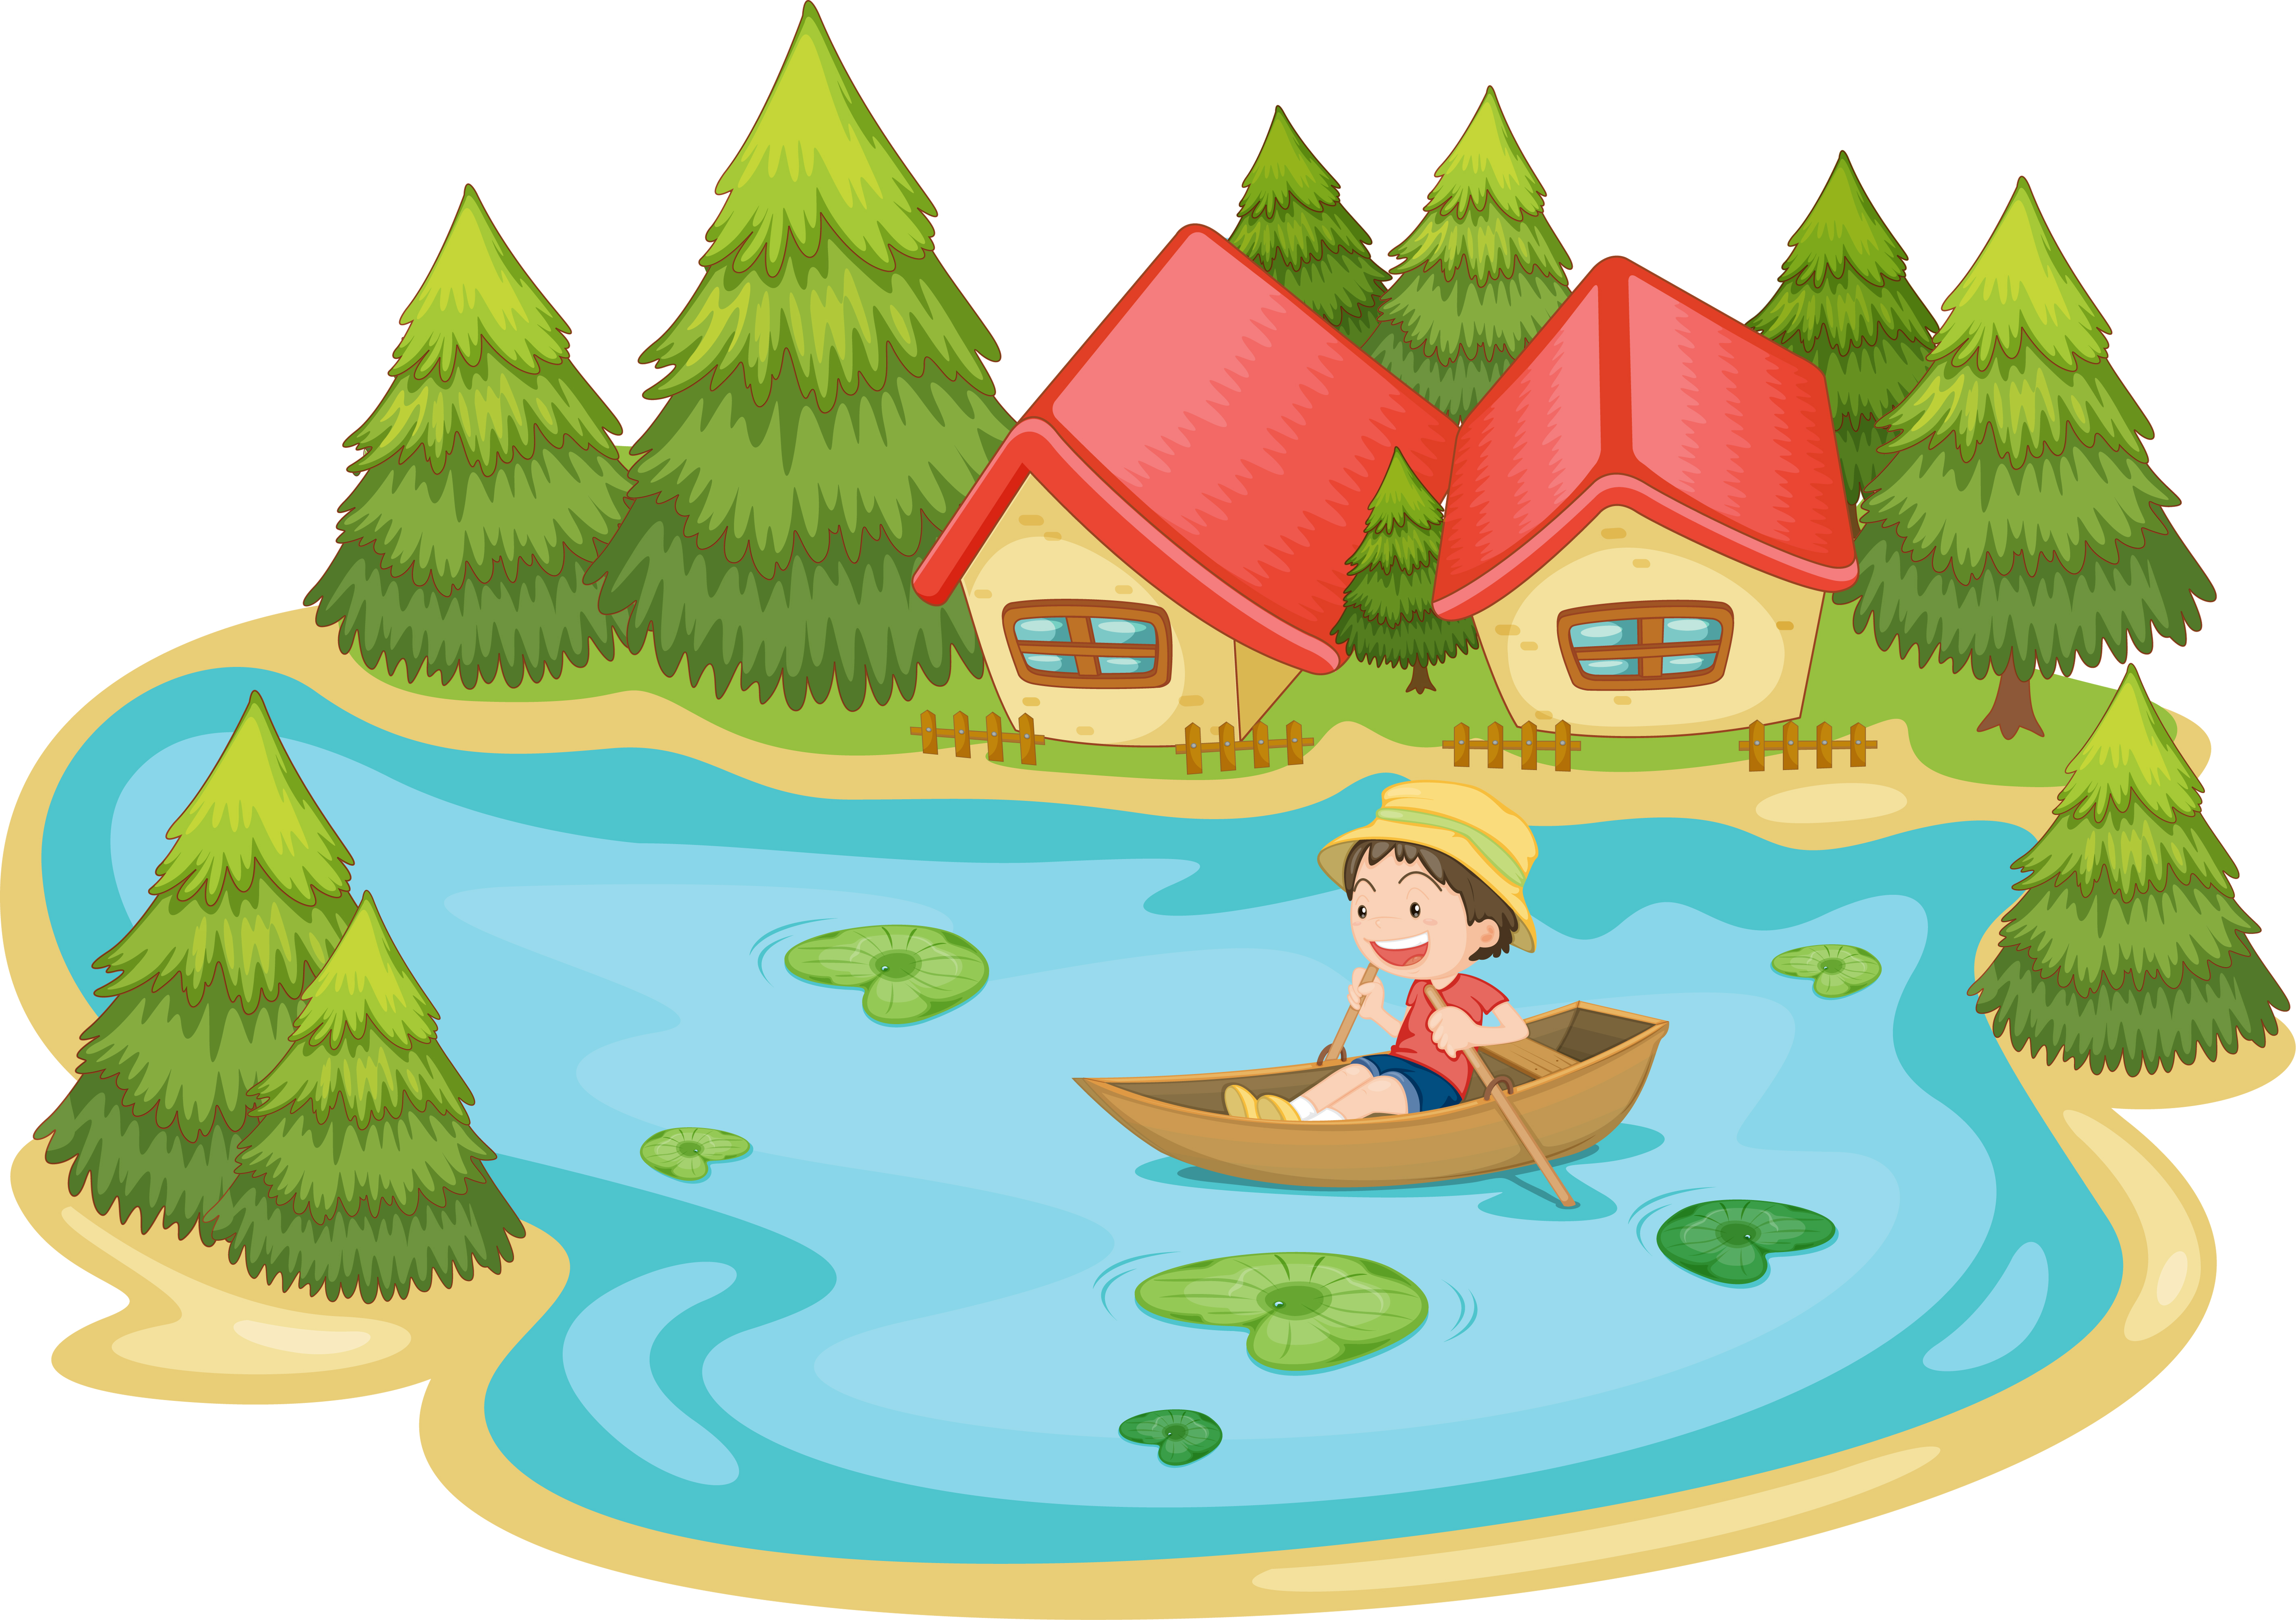 Summer Scene By The Lake Download Free Vectors Clipart Graphics Vector Art